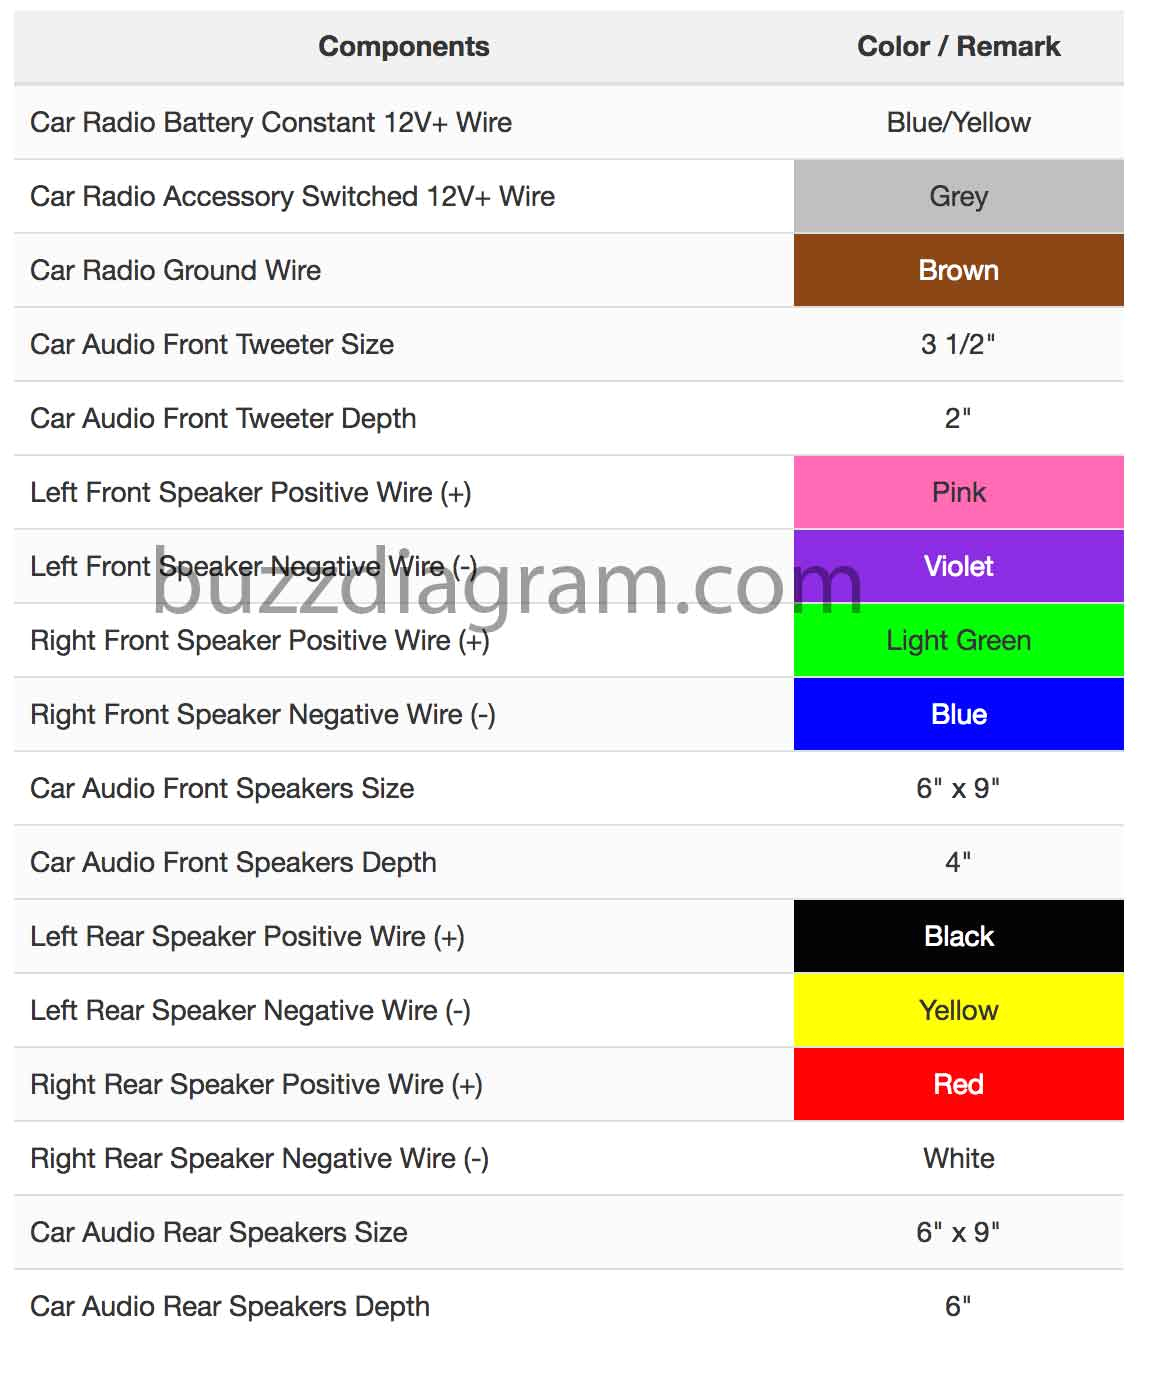 2002 Camry Wiring Diagram Pdf toyota Wiring Color Codes Wiring Diagram Article Review